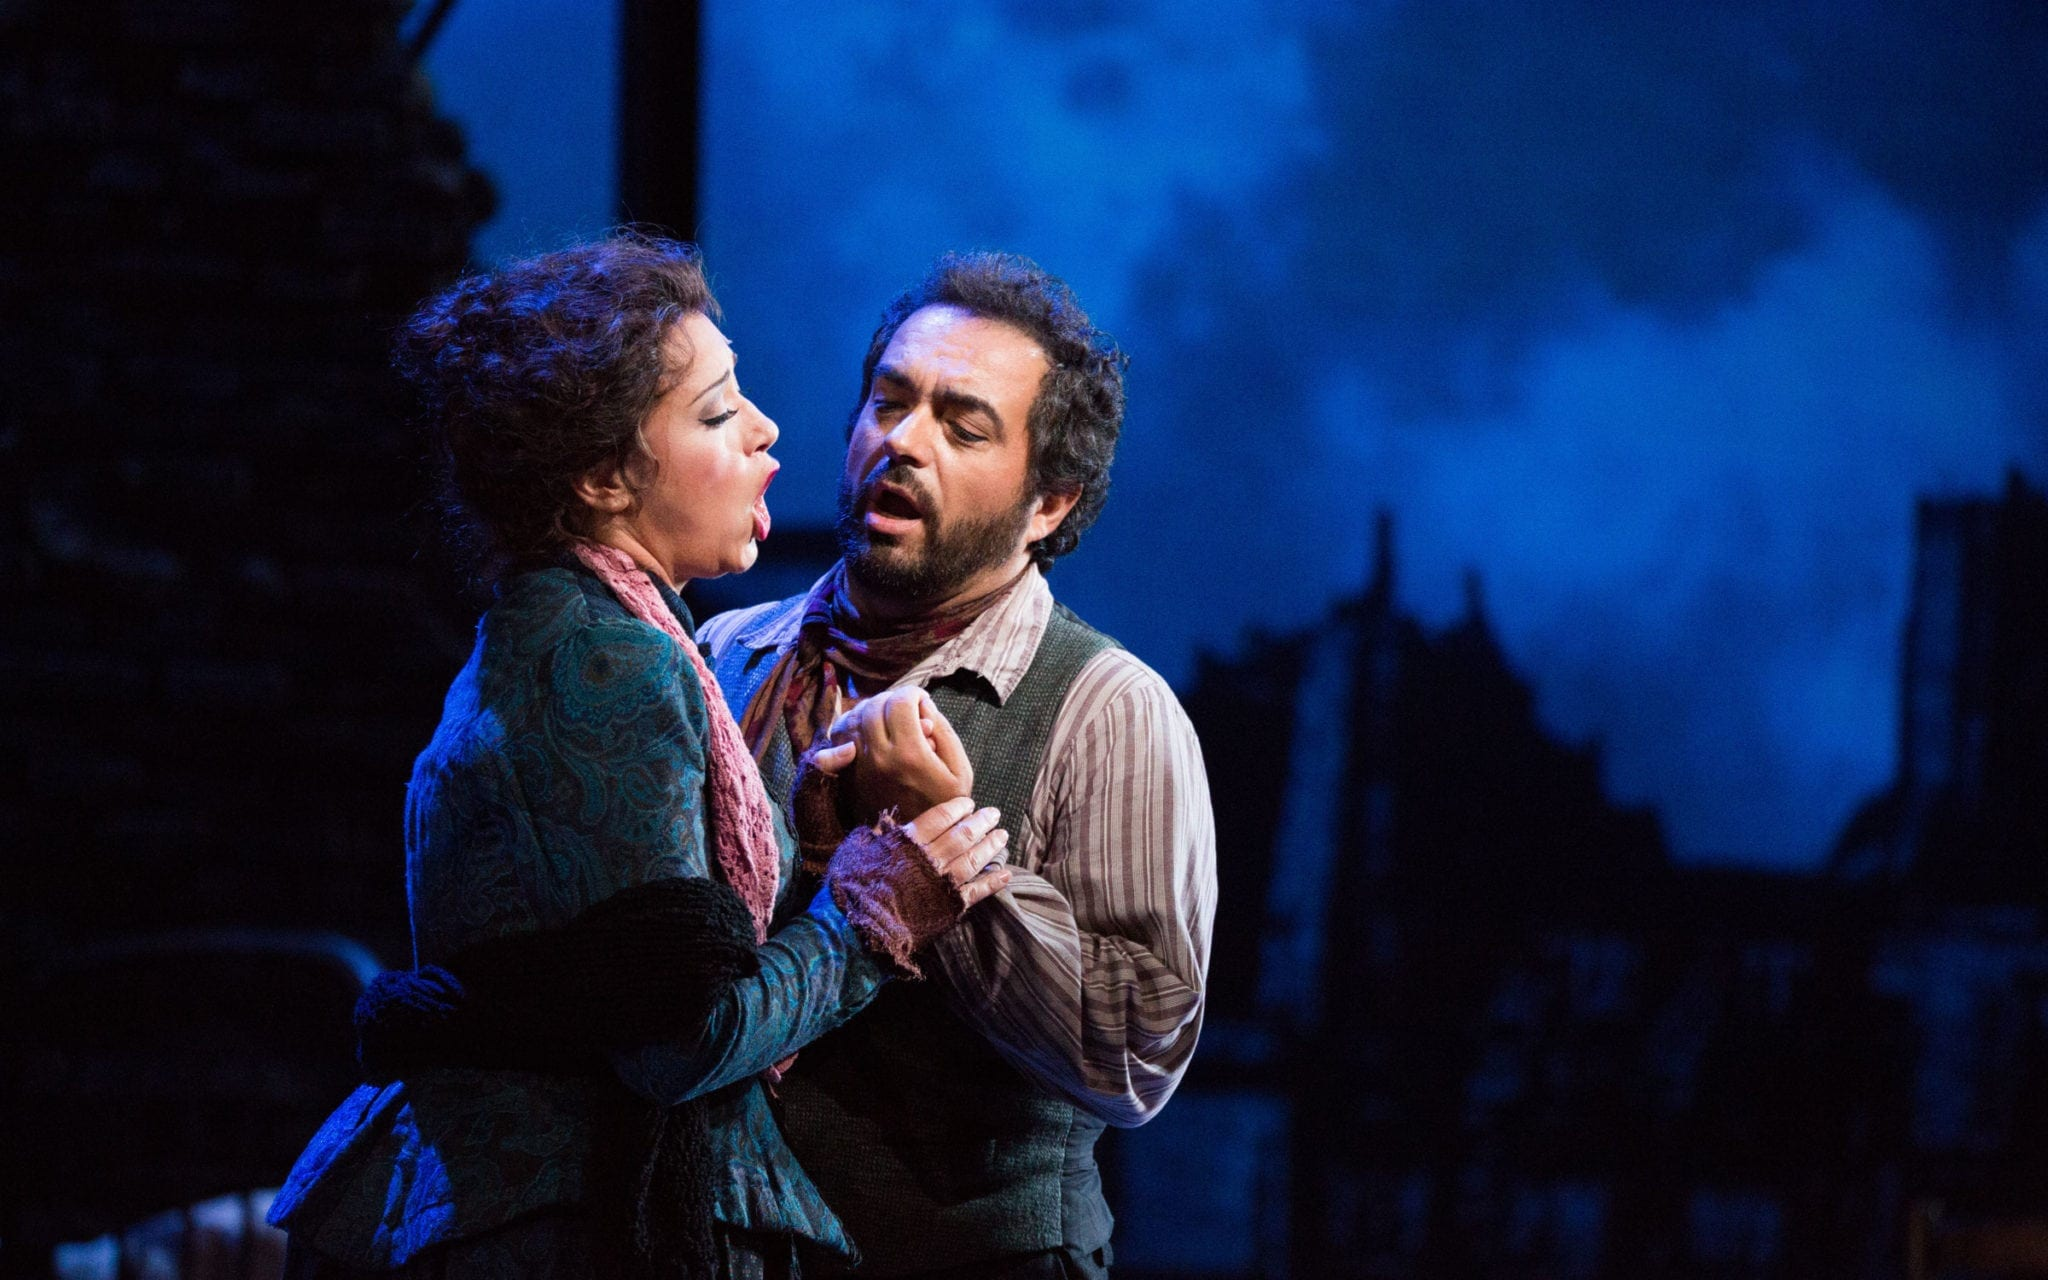 Maria Luigia Borsi and Gianluca Terranova in La Bohème. (Photos by Jeff Roffman)